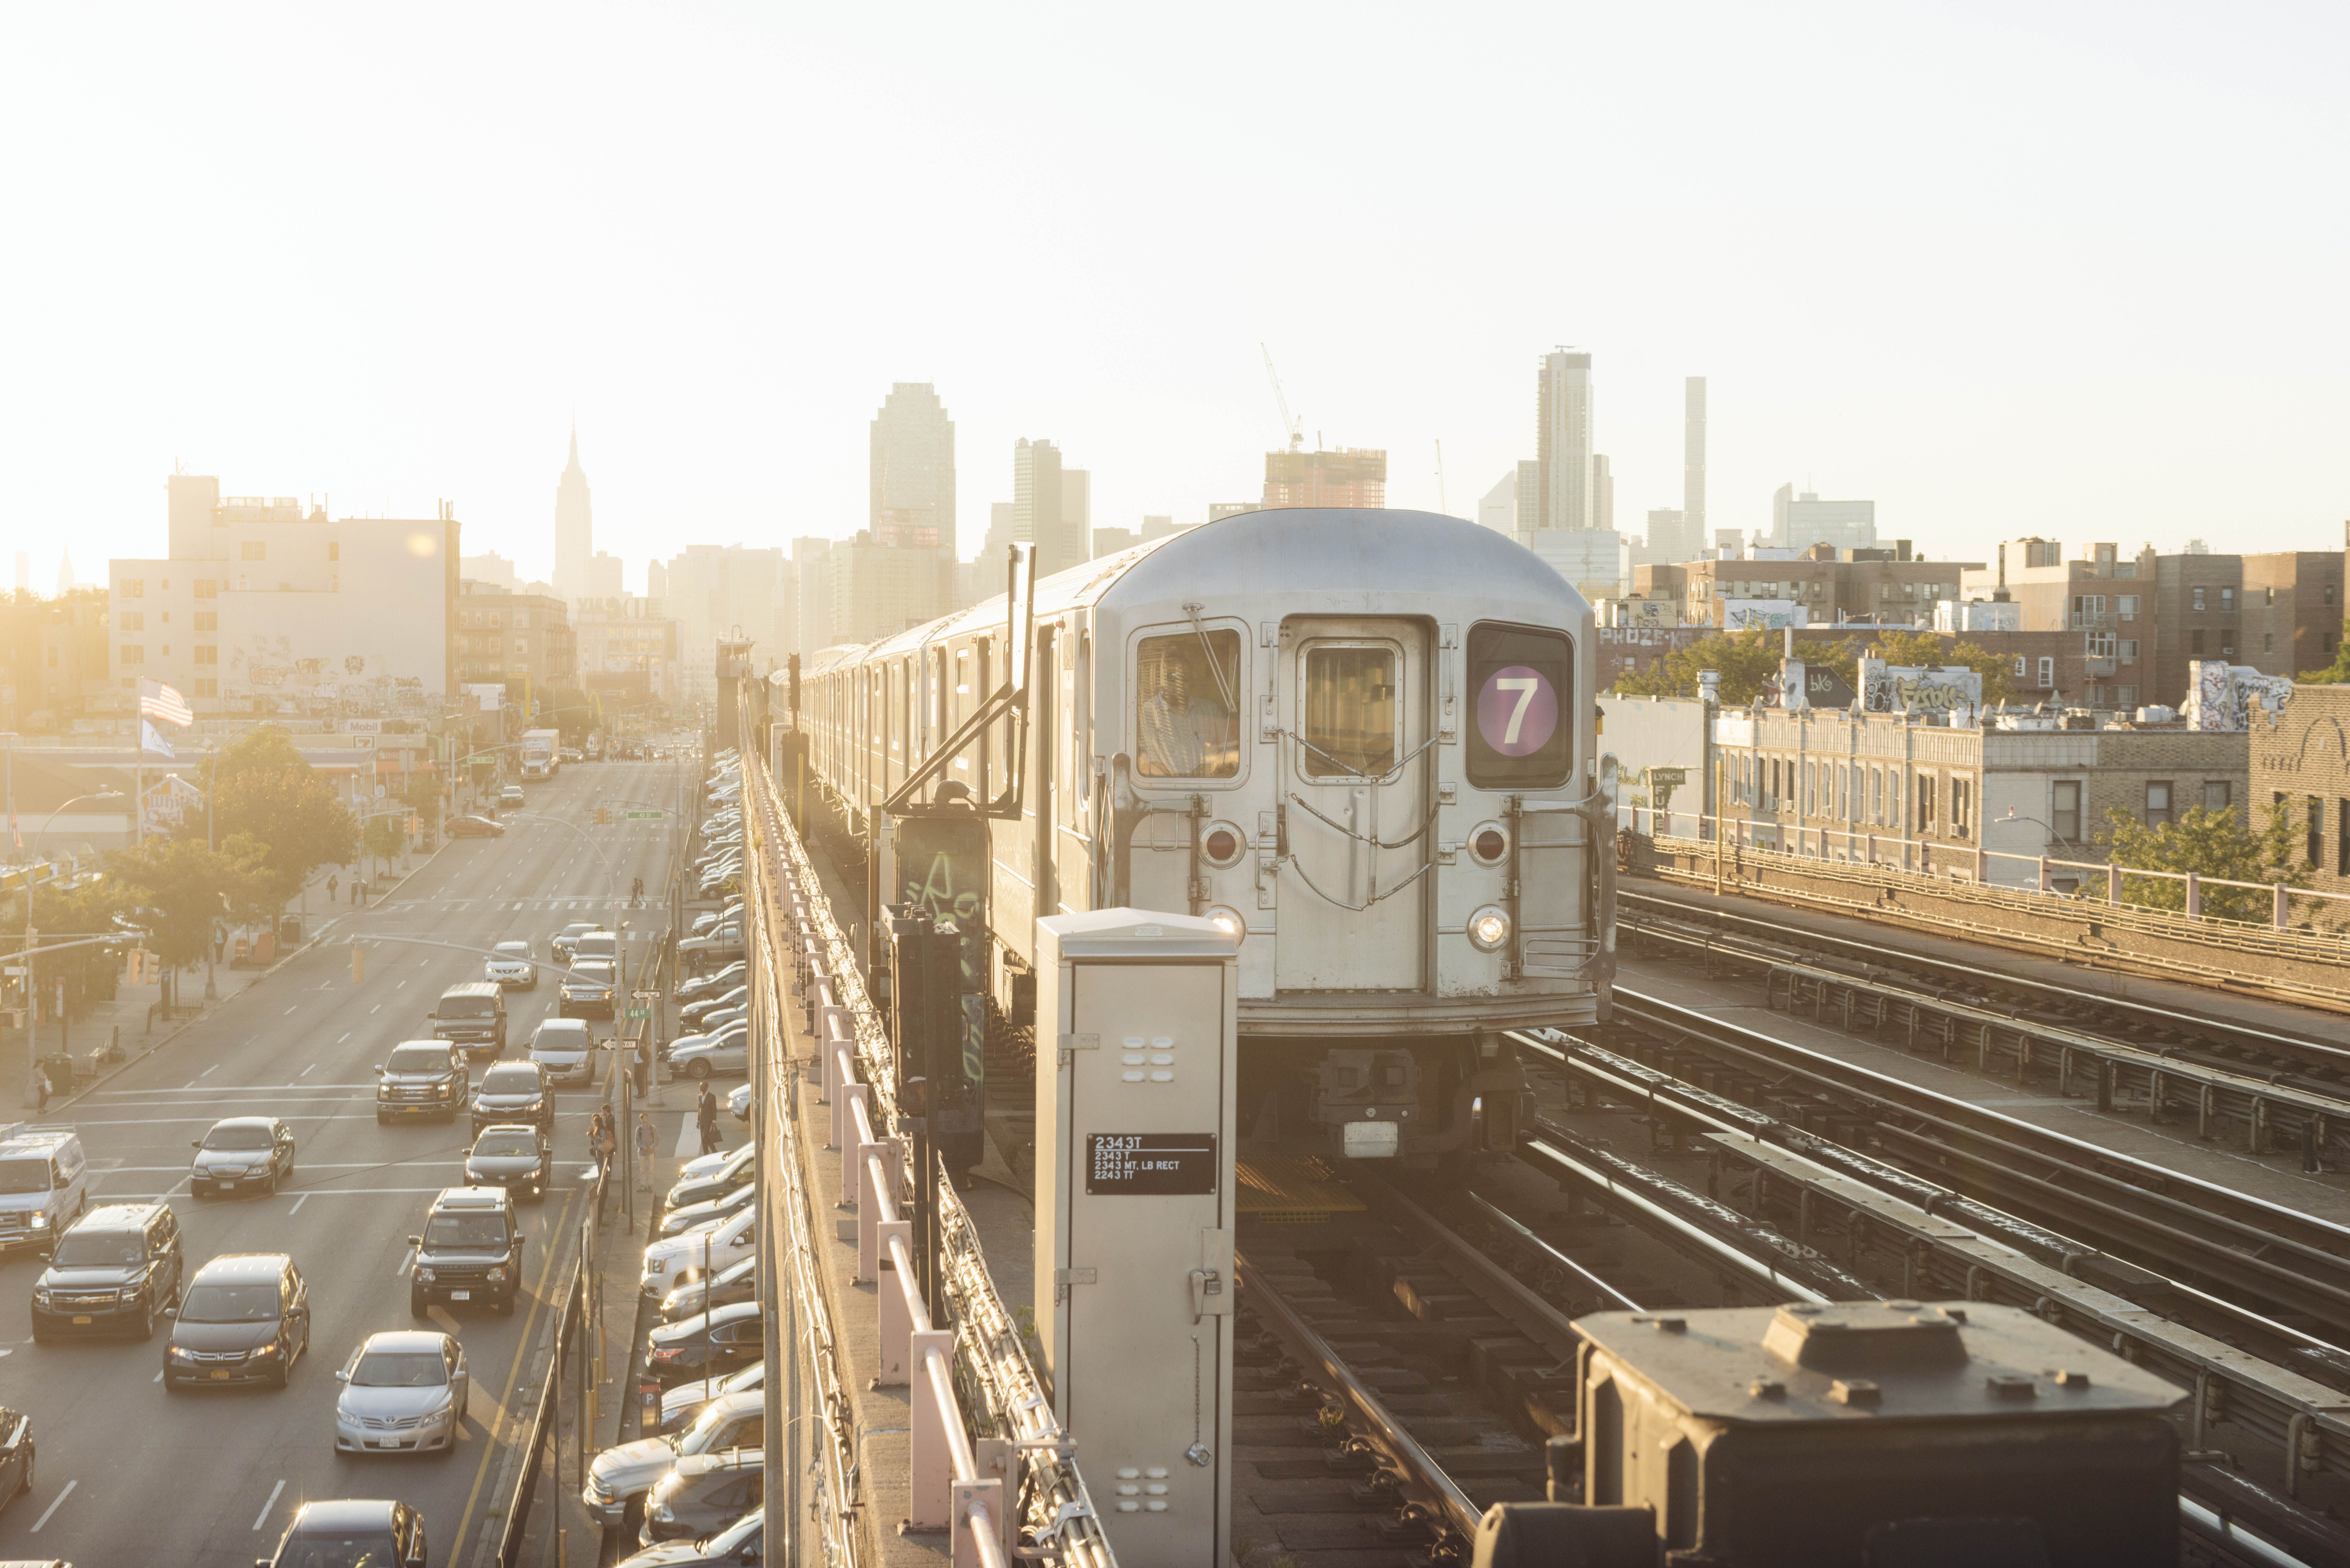 7 train going into Manhattan from Queens during sunset